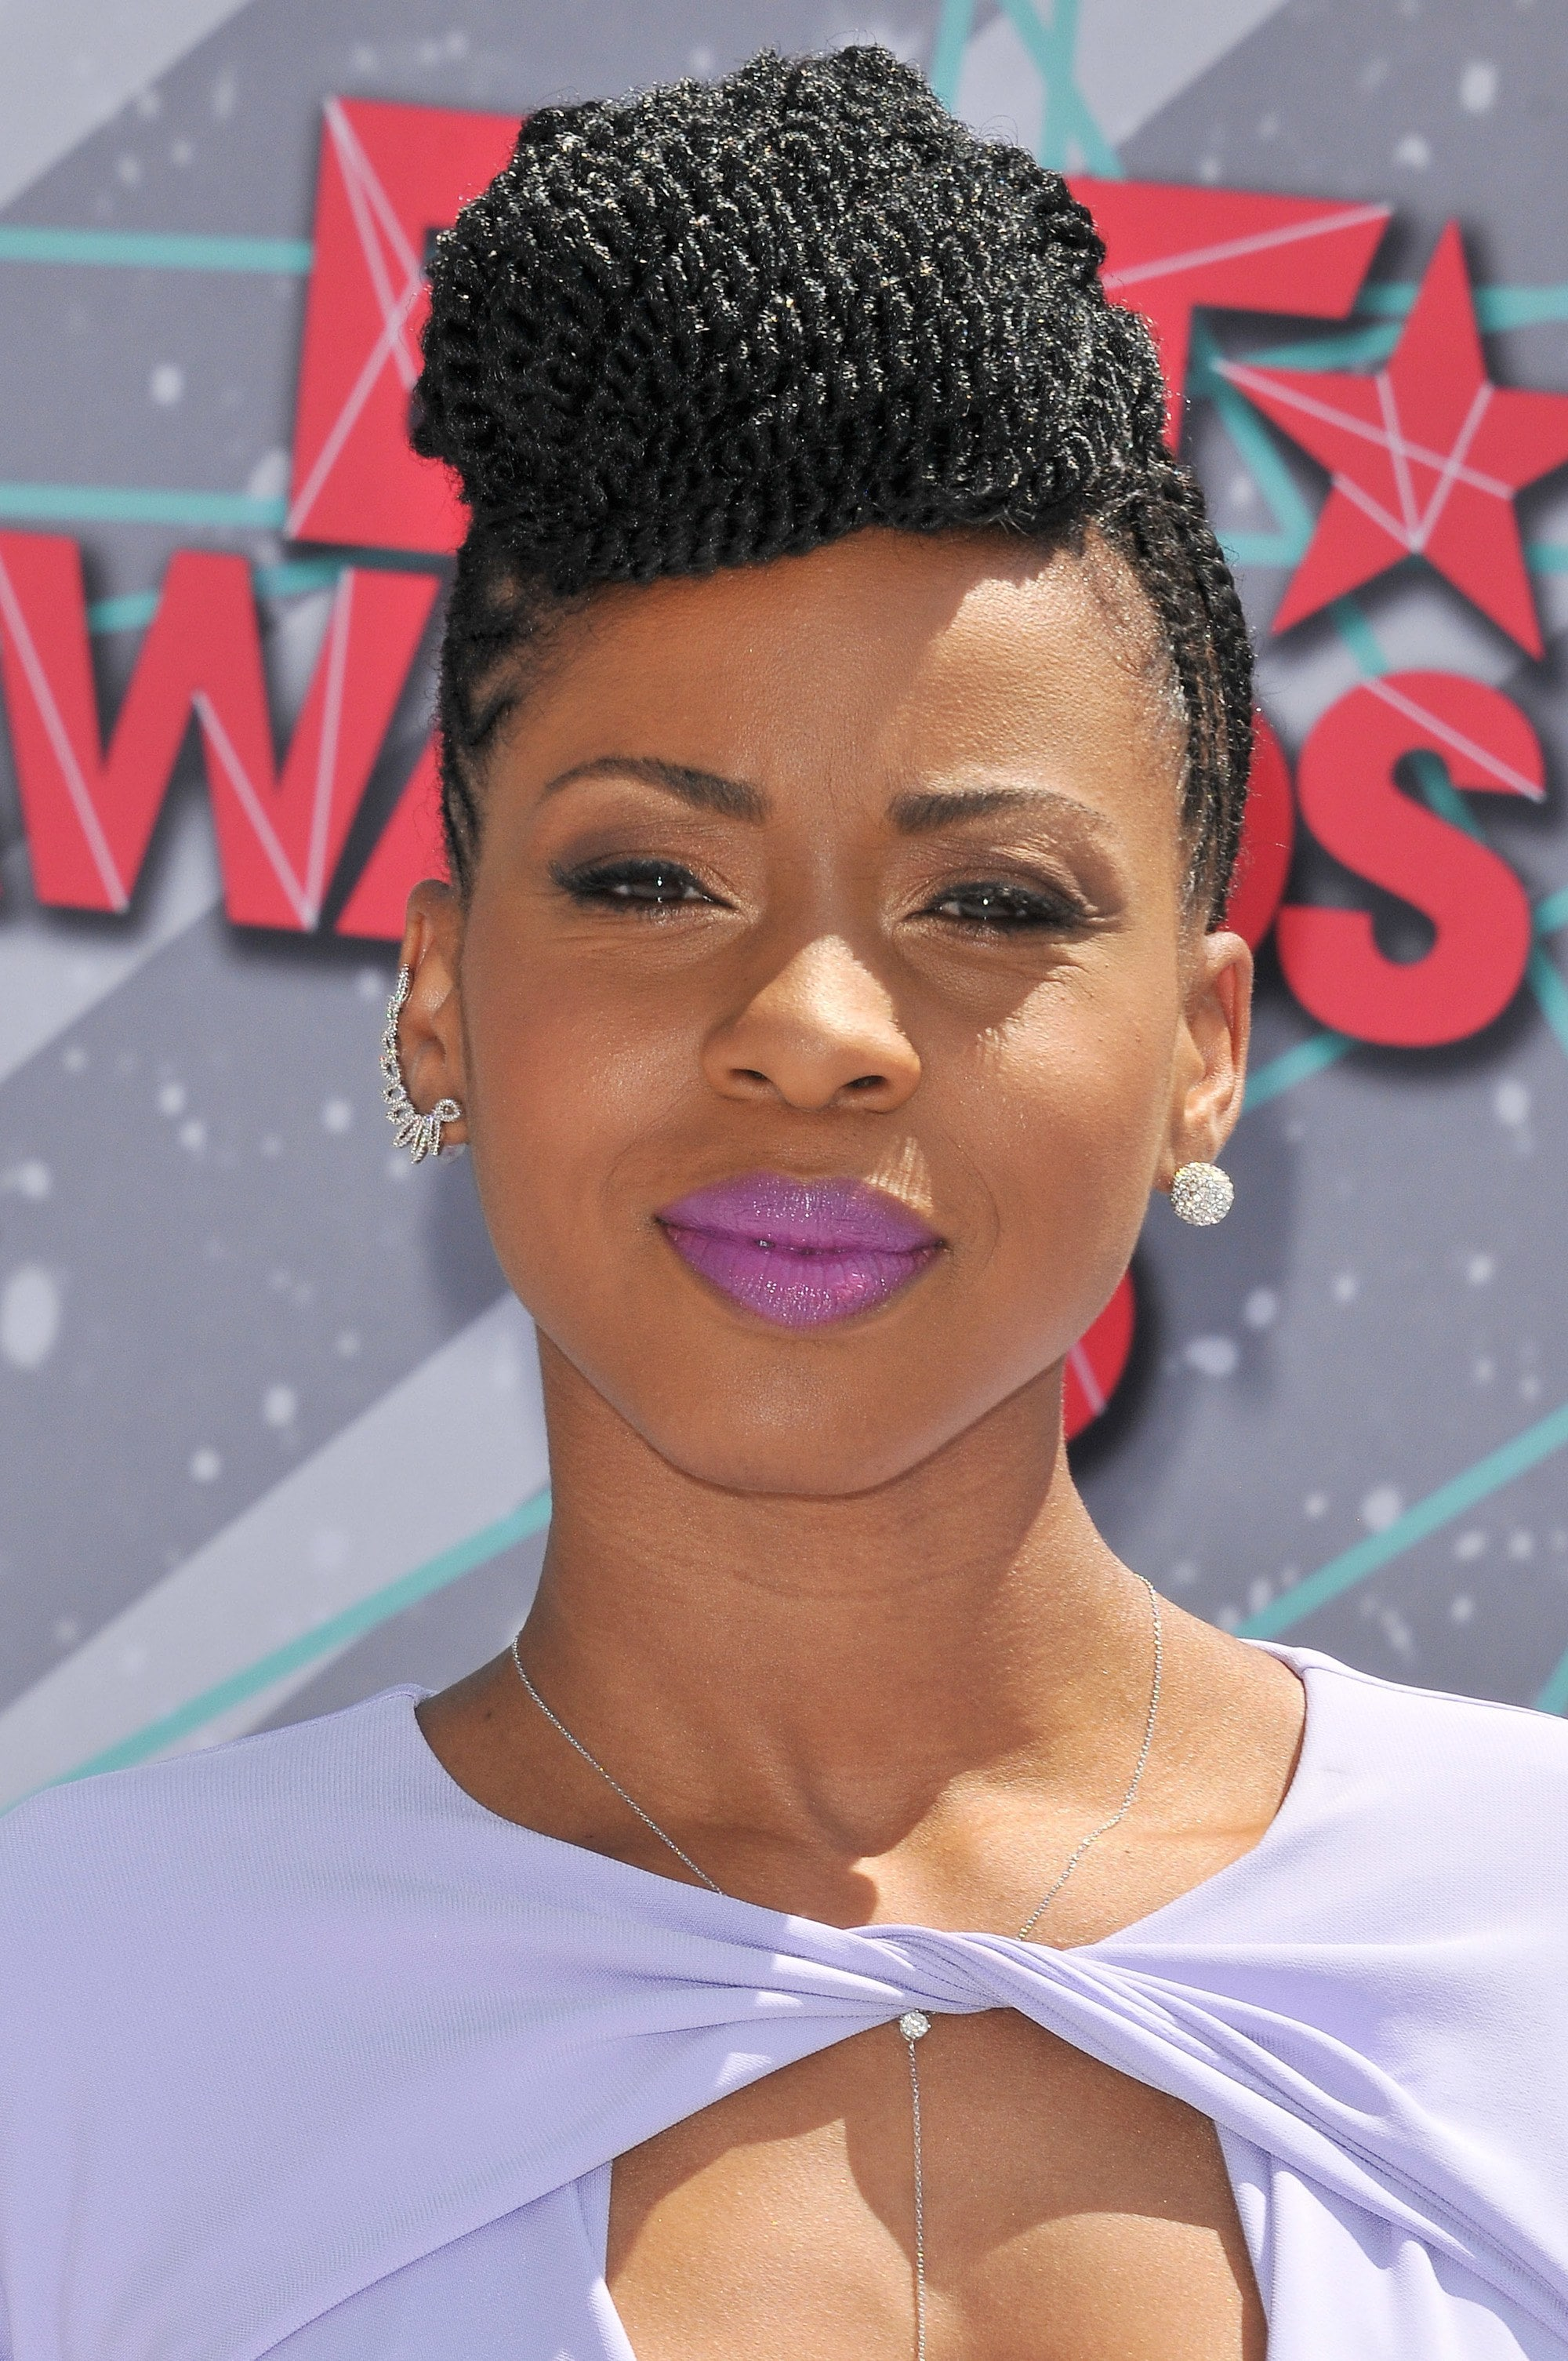 Danielle Mone truitt with kinky twists styled into a vintage updo